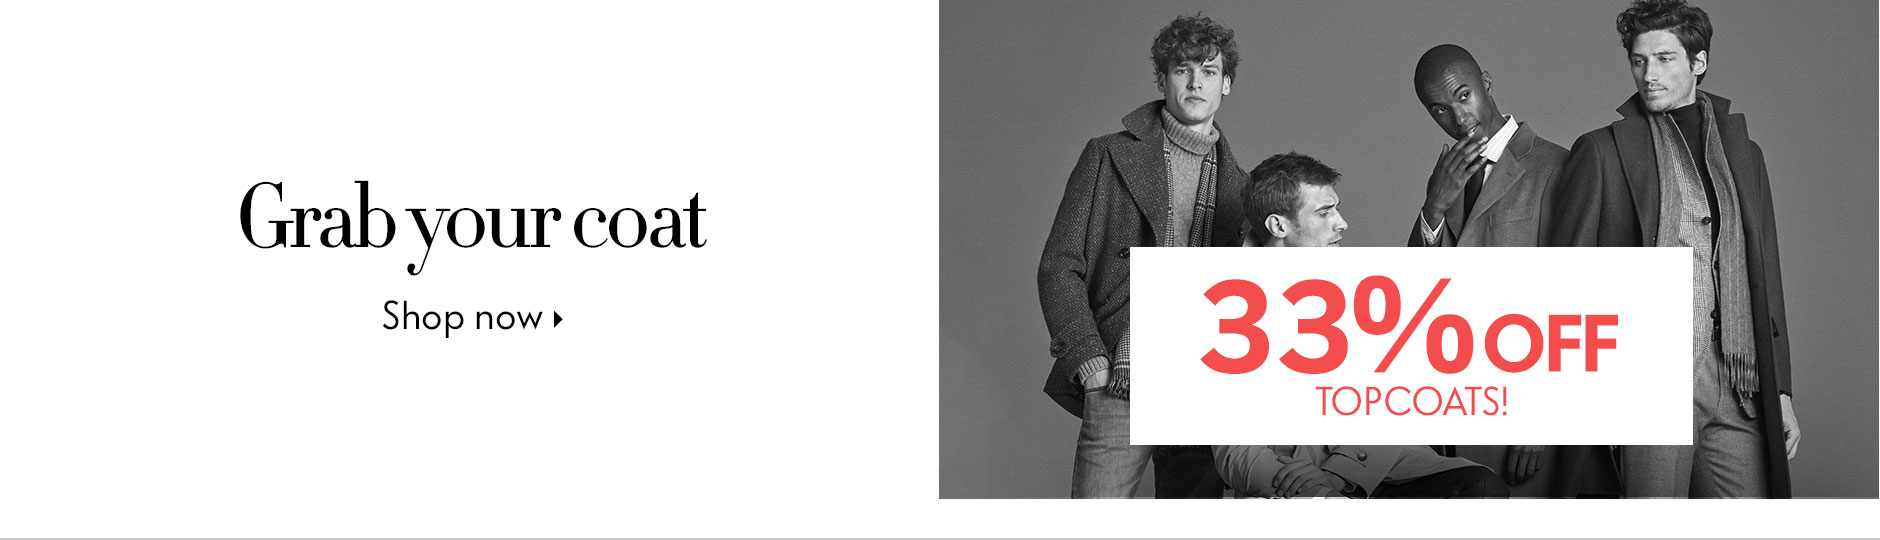 Grab your coat - 33% Off Topcoats